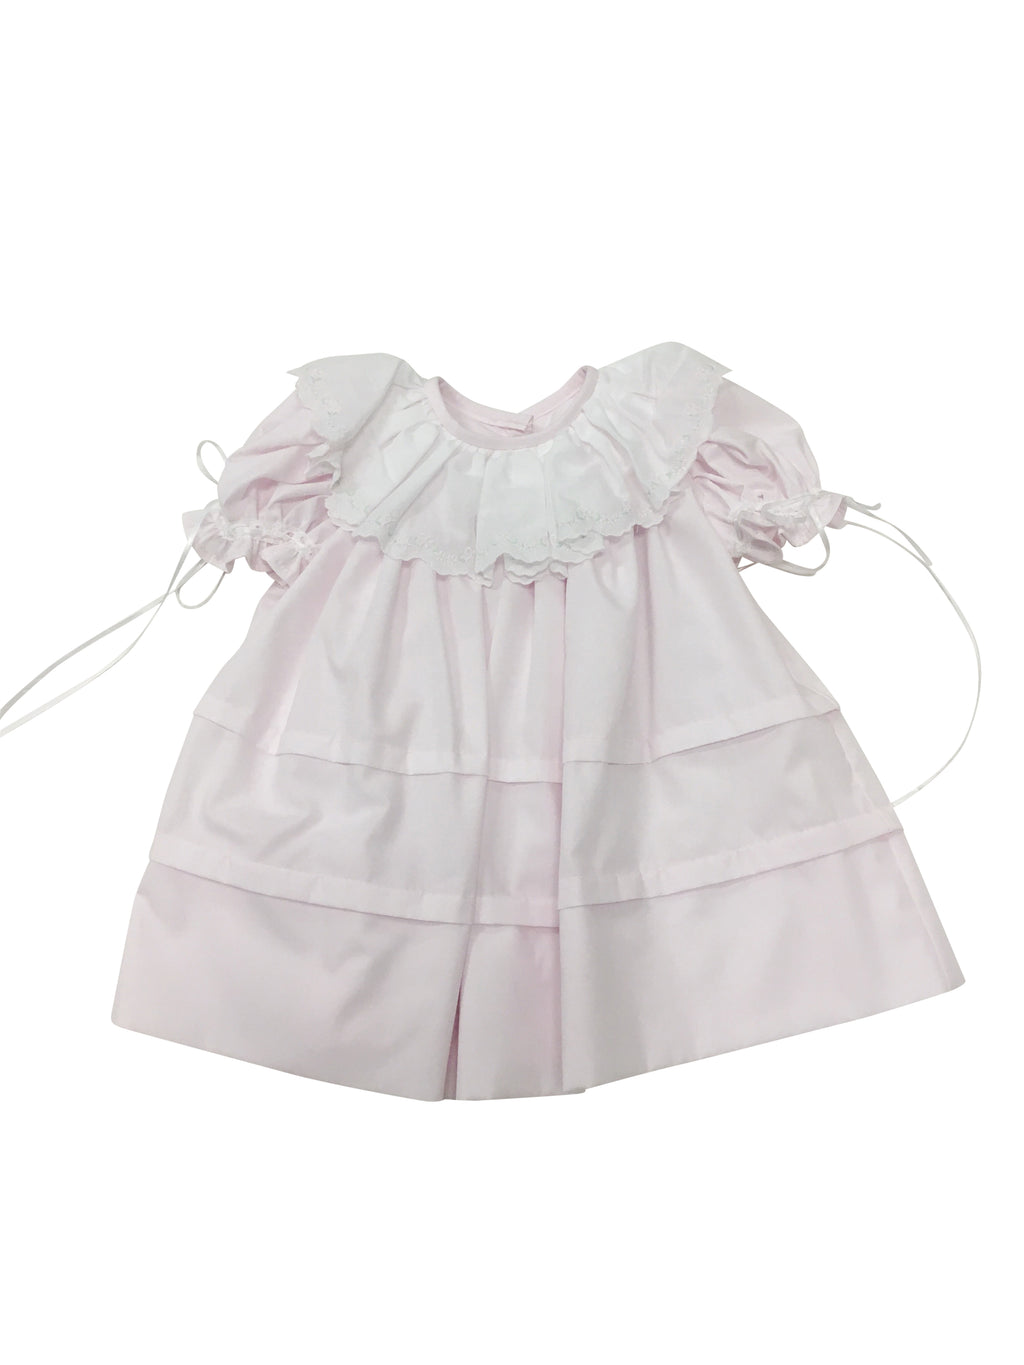 Heirloom Floral Collar Dress Pink - Born Childrens Boutique